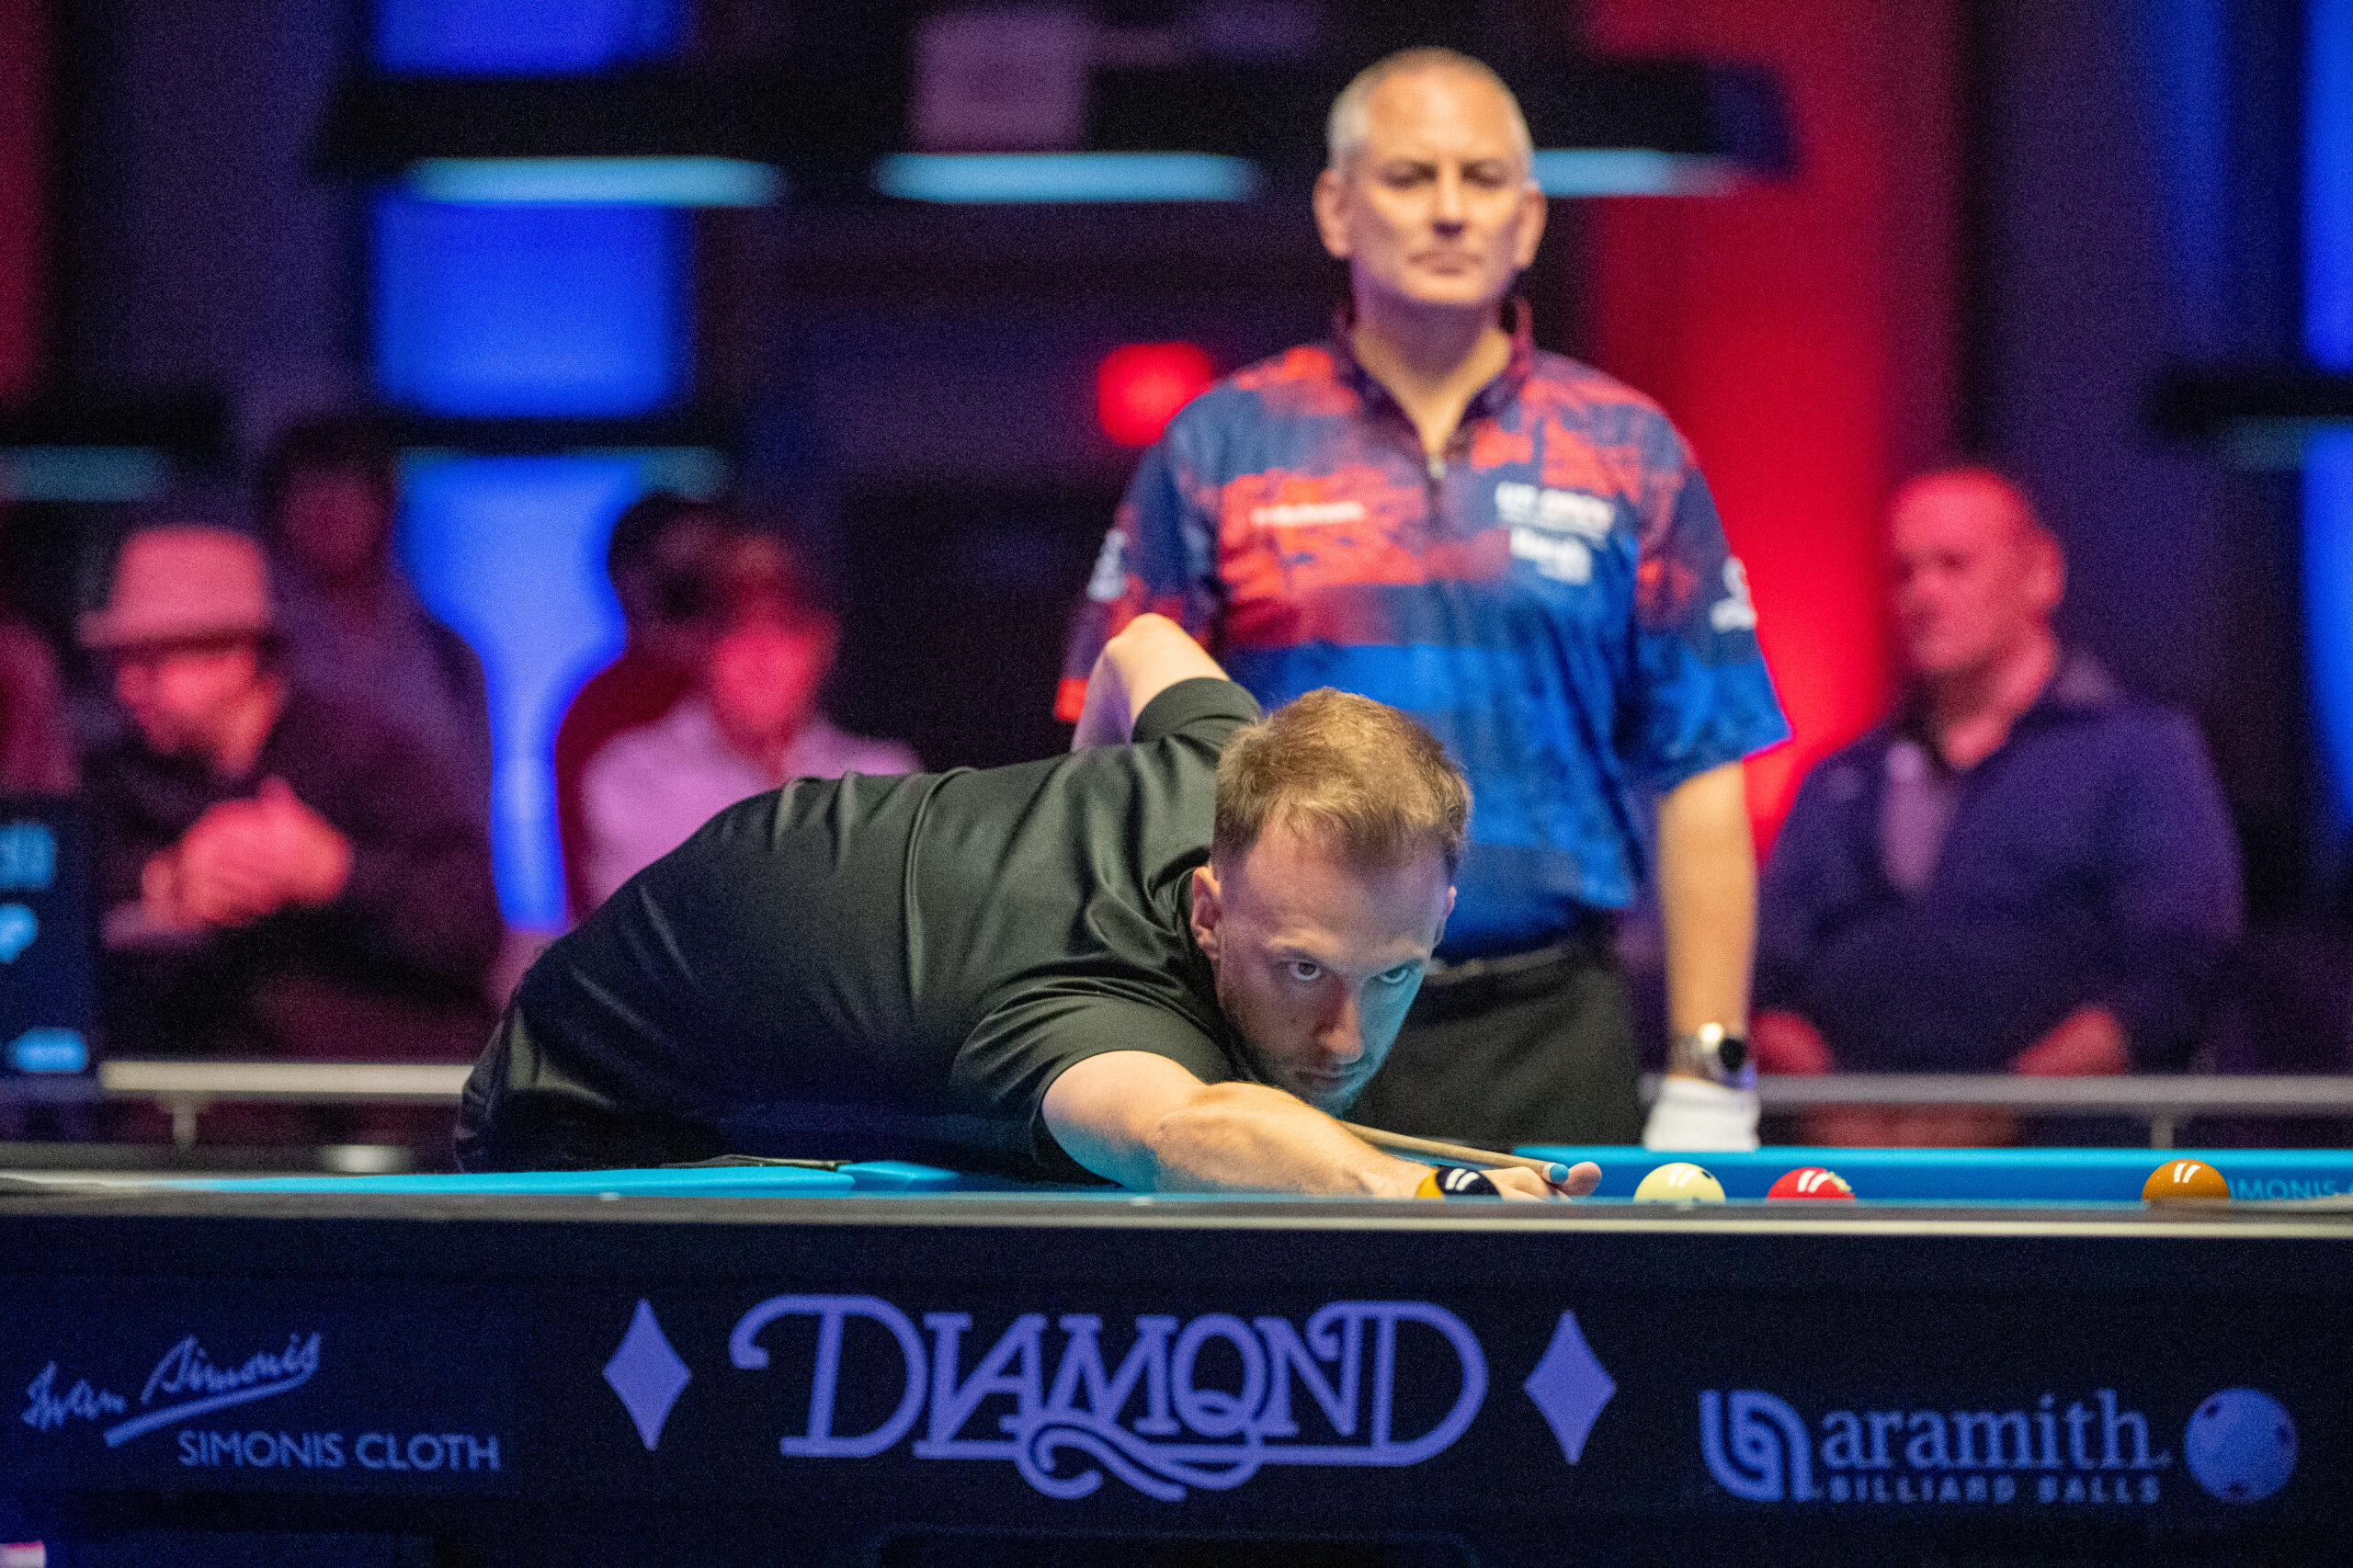 Day 2 of US Open Pool Championship sees players hopes and dreams decided